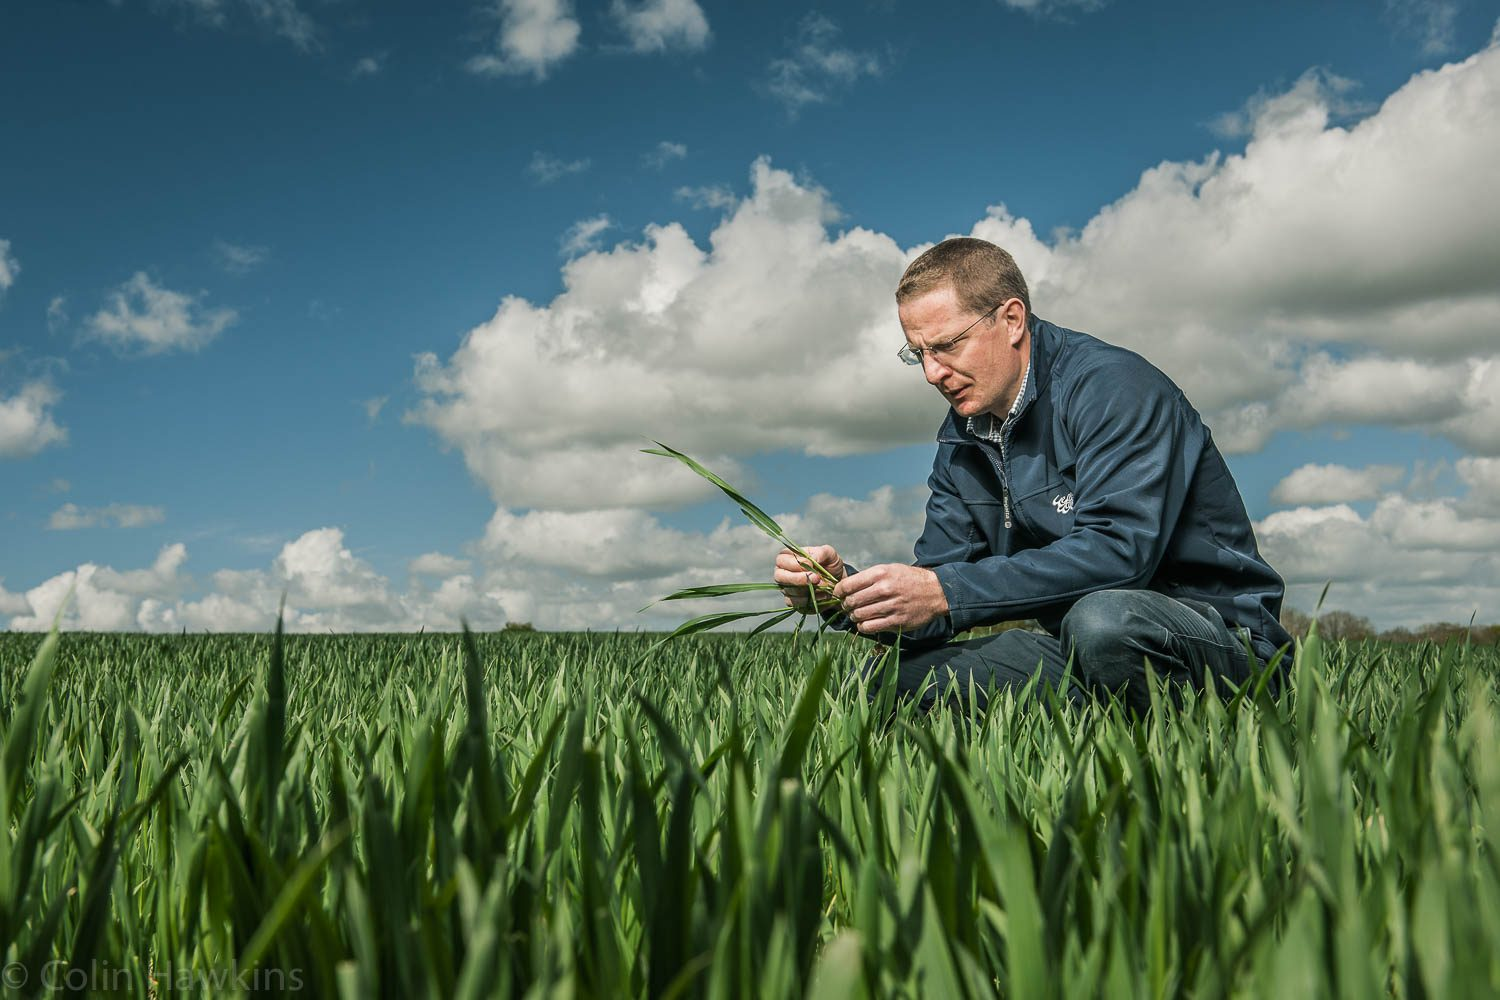 Colin Hawkins Photography Commercial Photography Bath Somerset Wiltshire